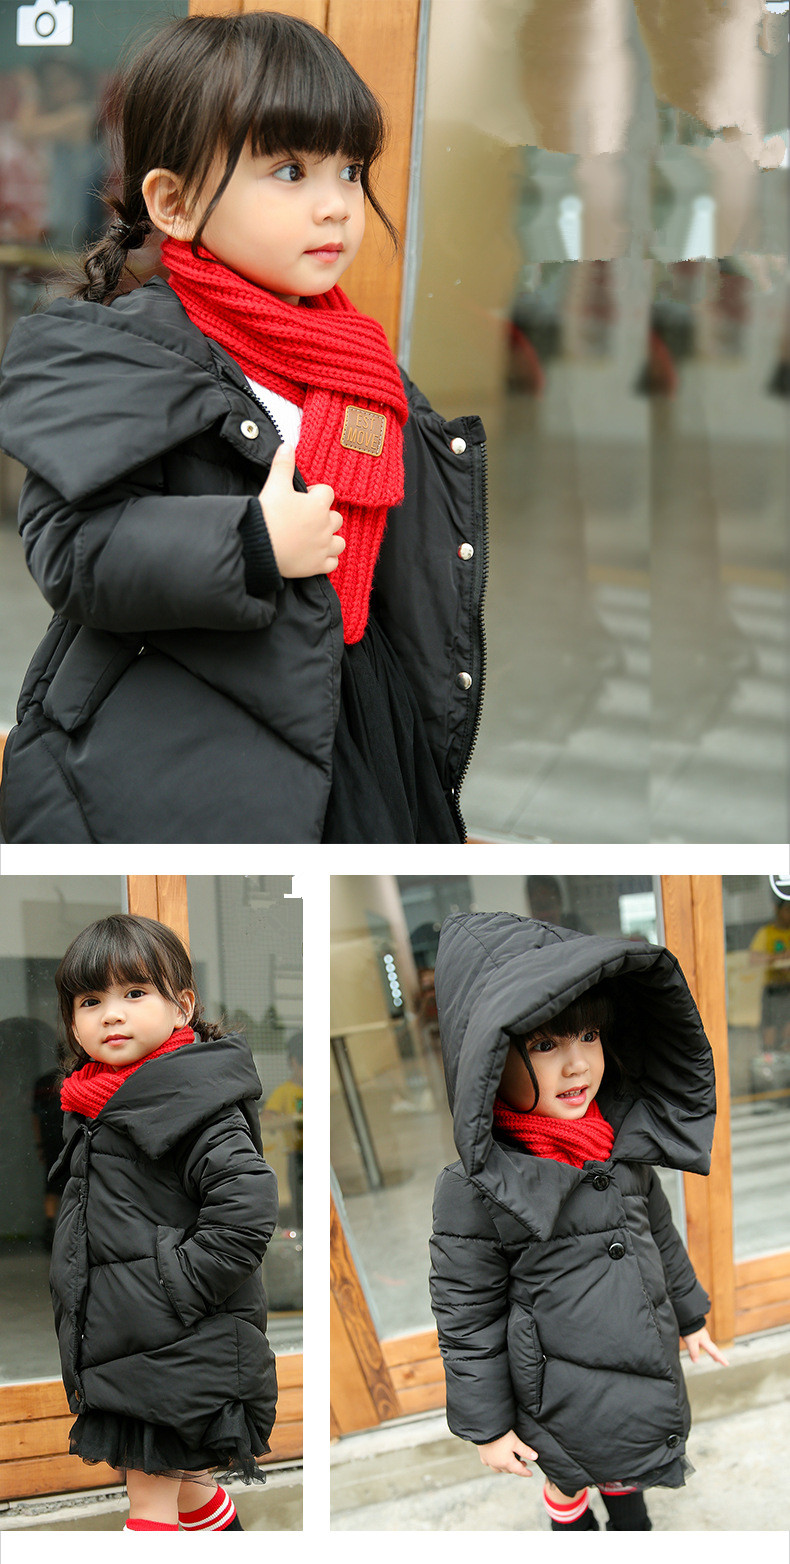 2017 New Fashion Girls Winter Warm Coat Kids Jacket Hooded Snow Wear Cotton Down Outerwear Girl Solid Color Winter Clothes